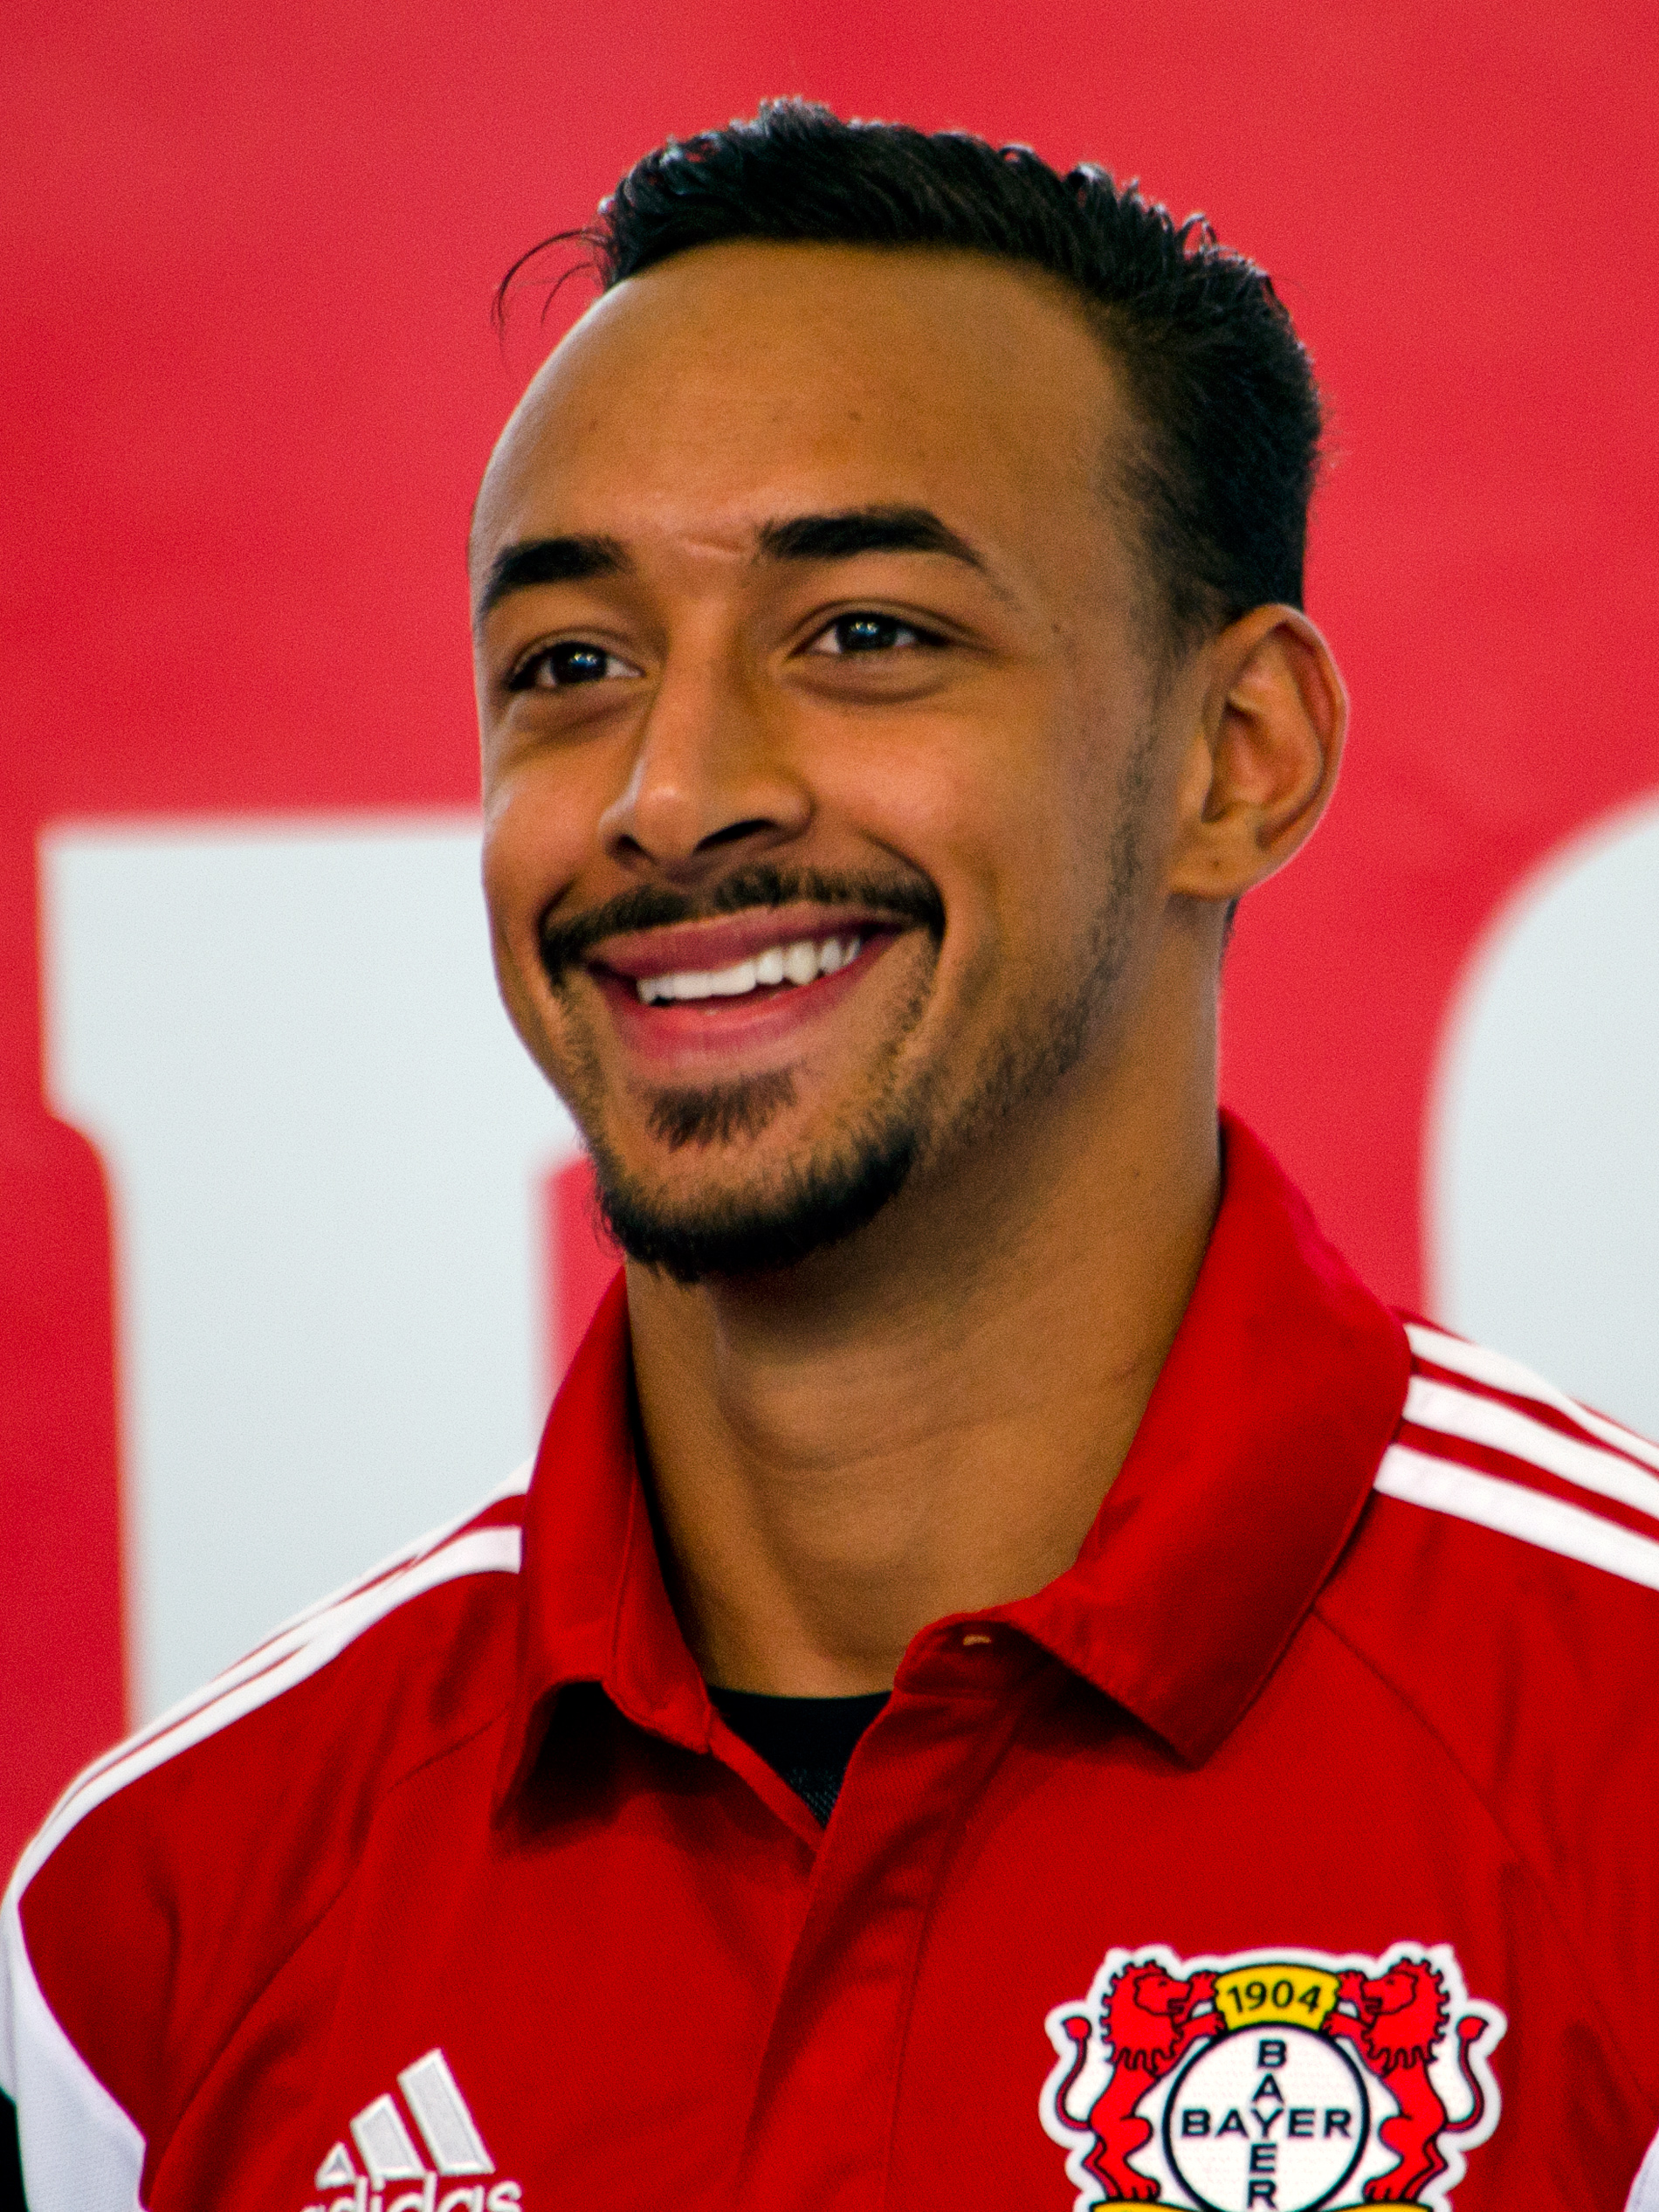 The 28-year old son of father (?) and mother(?) Karim Bellarabi in 2018 photo. Karim Bellarabi earned a  million dollar salary - leaving the net worth at 3.8 million in 2018